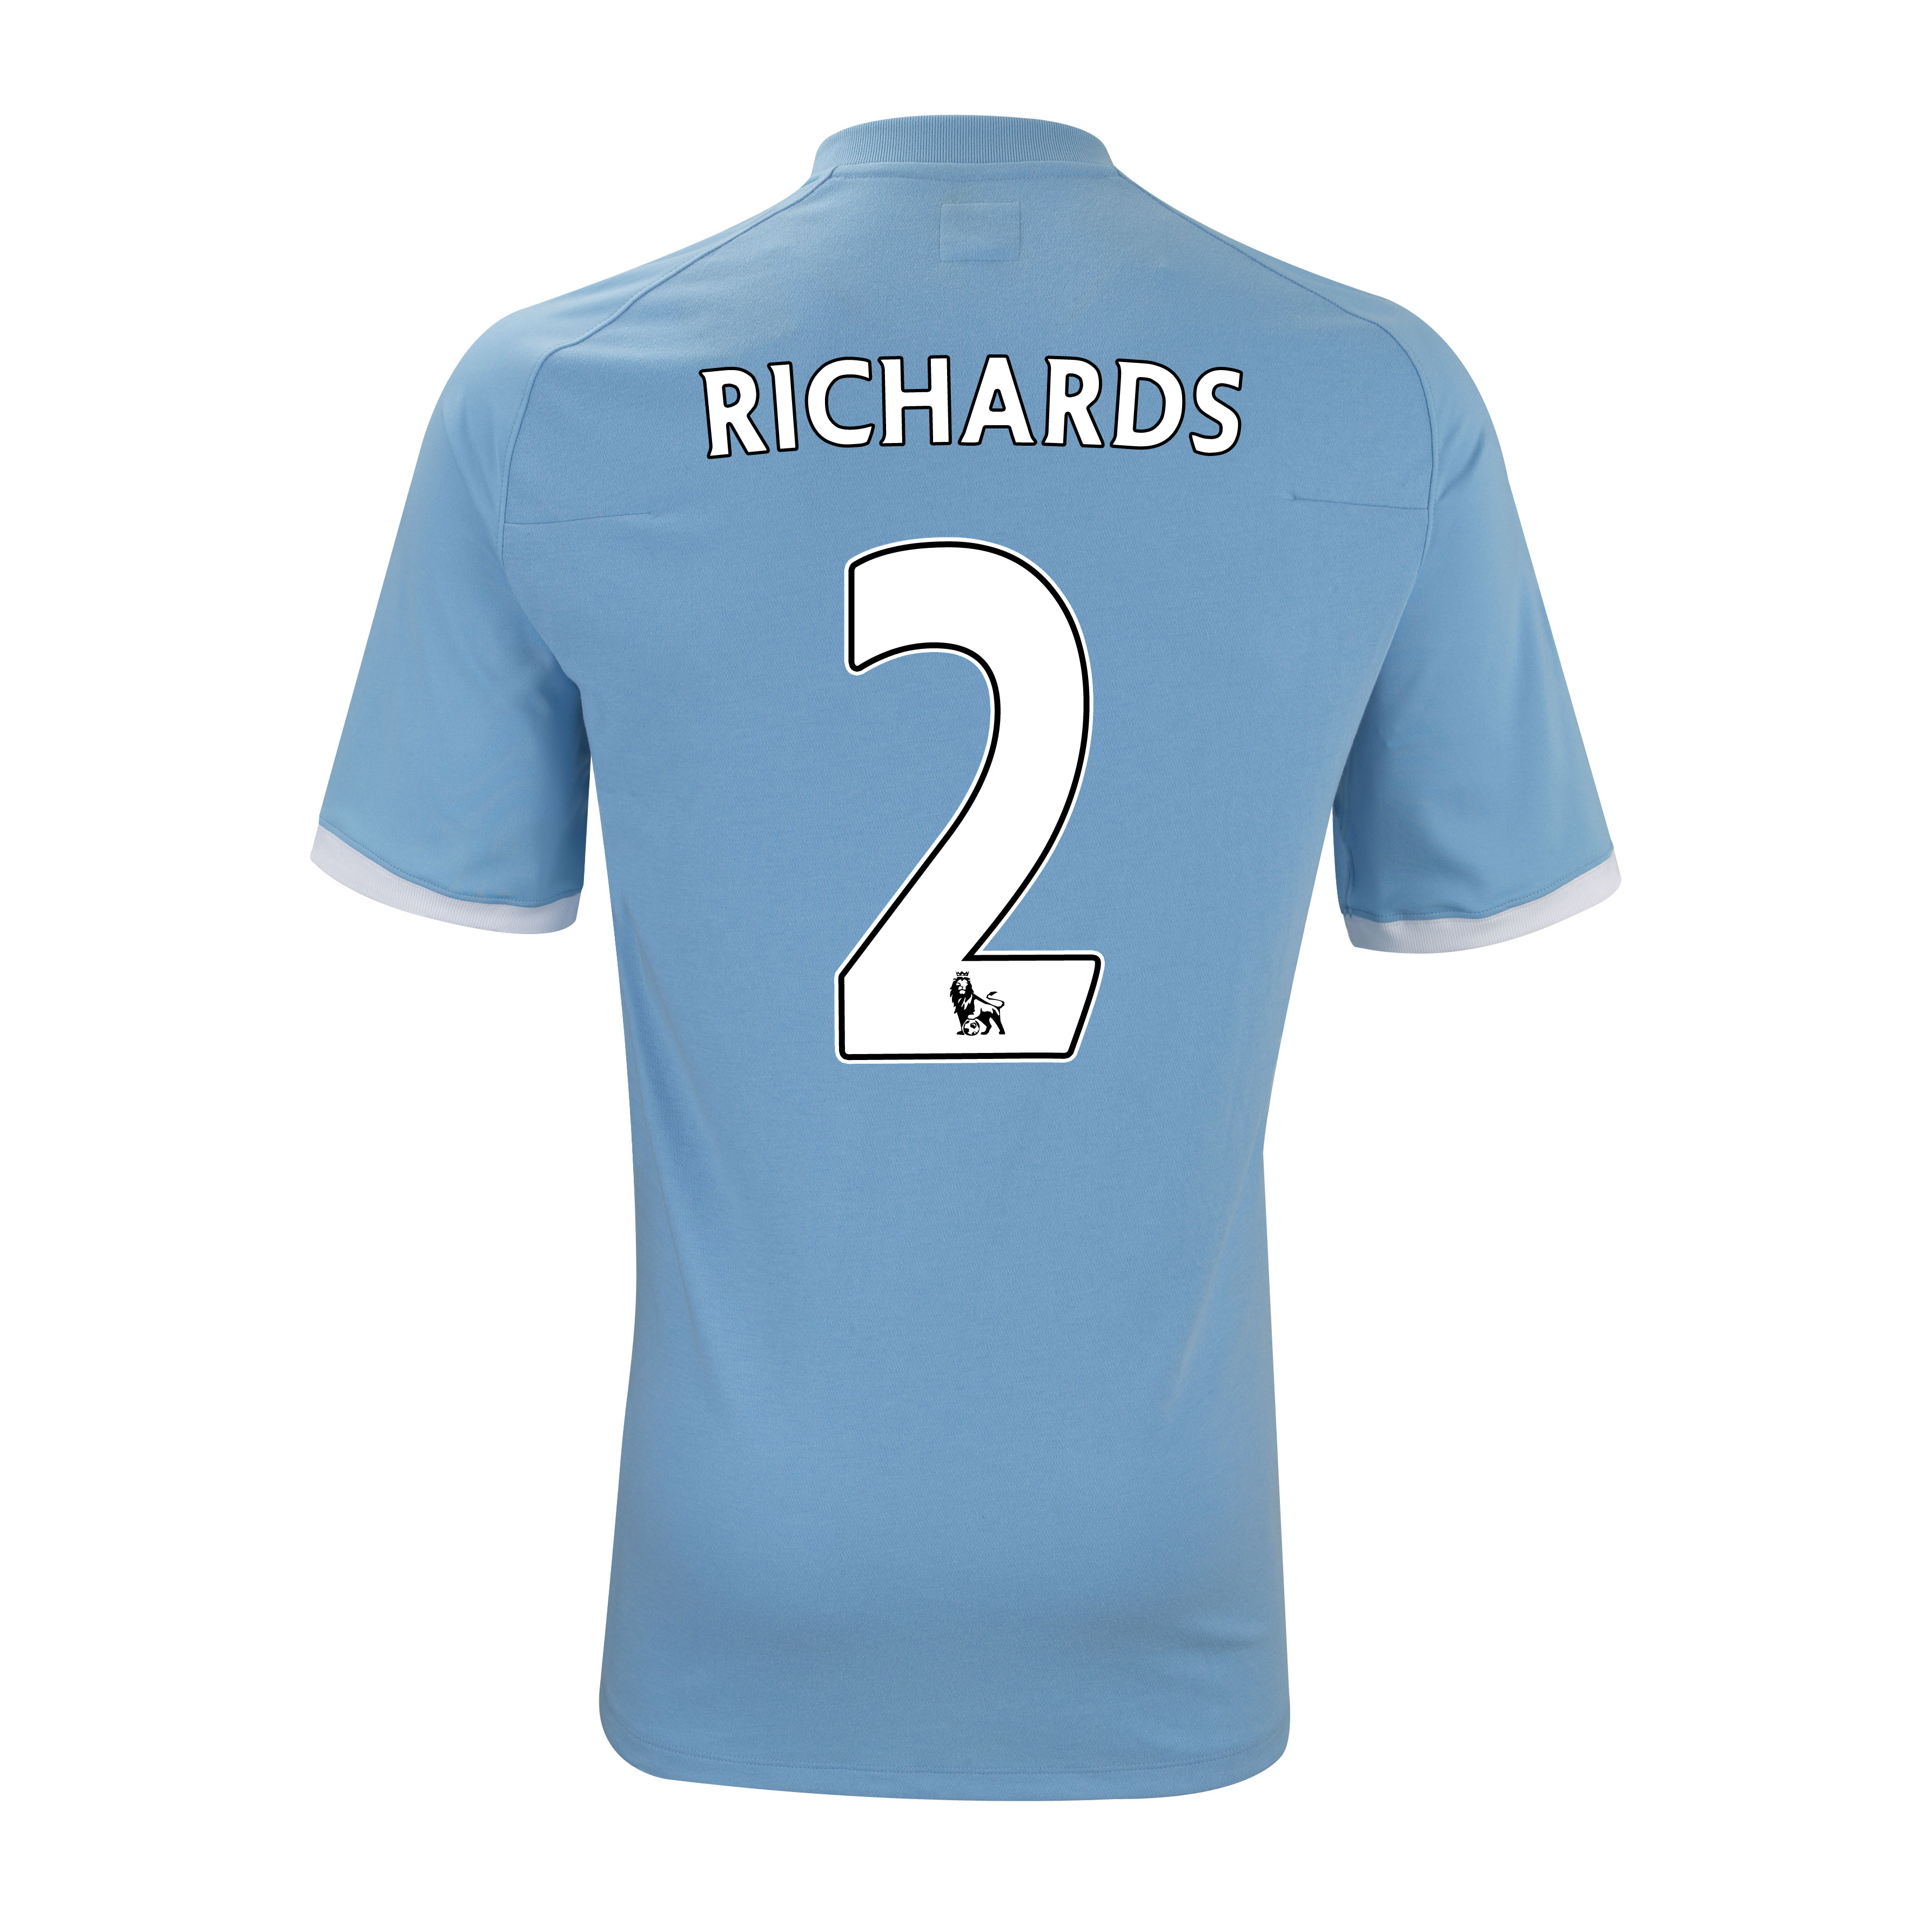 Manchester City Home Shirt 2010/11 with Richards 2 Printing - Kids